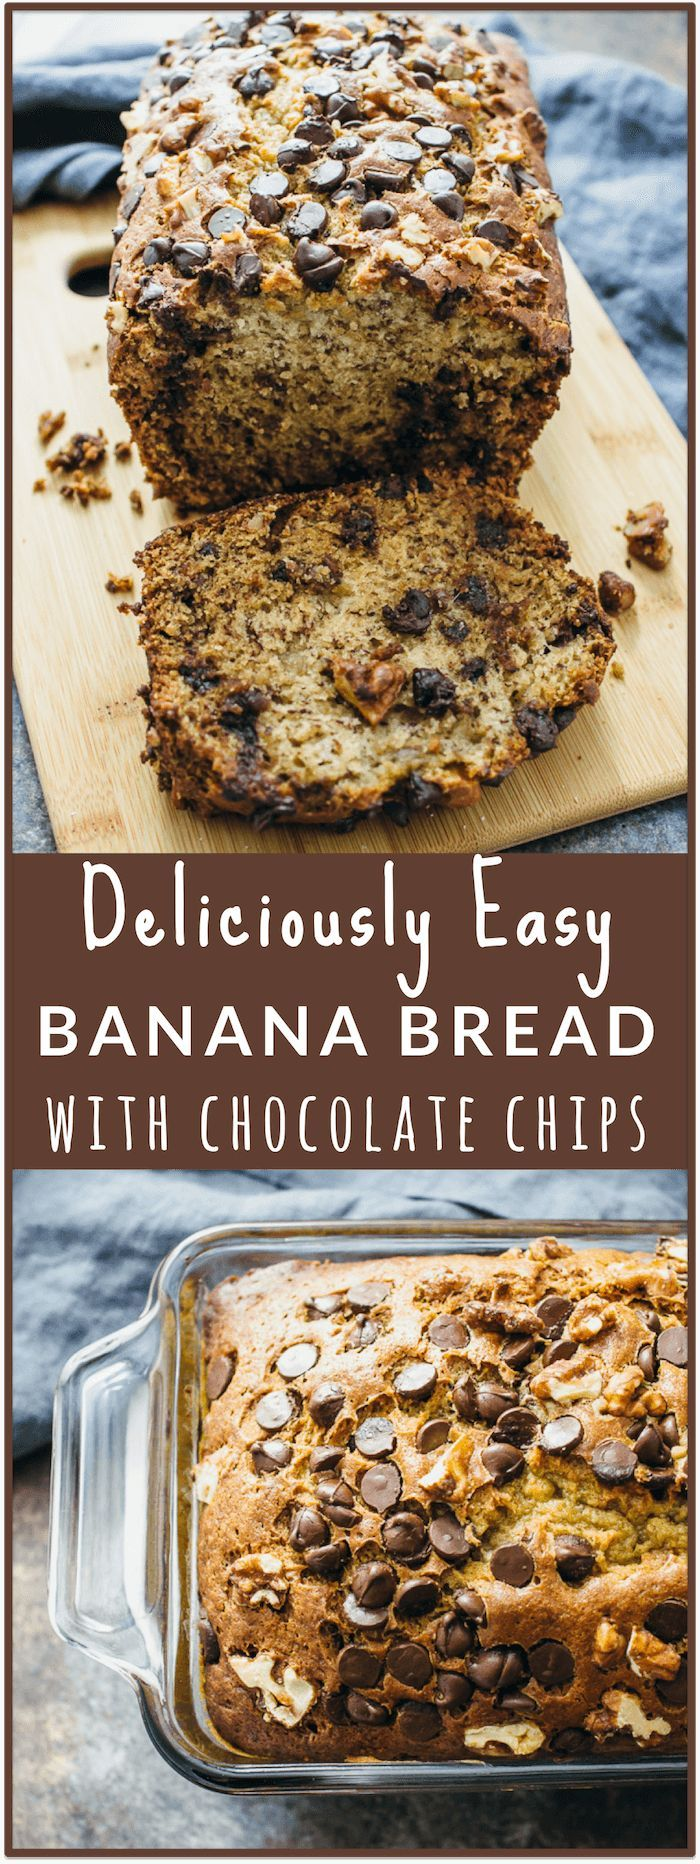 Banana bread with chocolate chips and walnuts - Here's an easy and healthy recipe for banana bread with chocolate chips and walnuts! This banana bread is wonderfully moist on the inside and has a nice crunchy golden crust on the outside. - http://savorytooth.com via /savory_tooth/